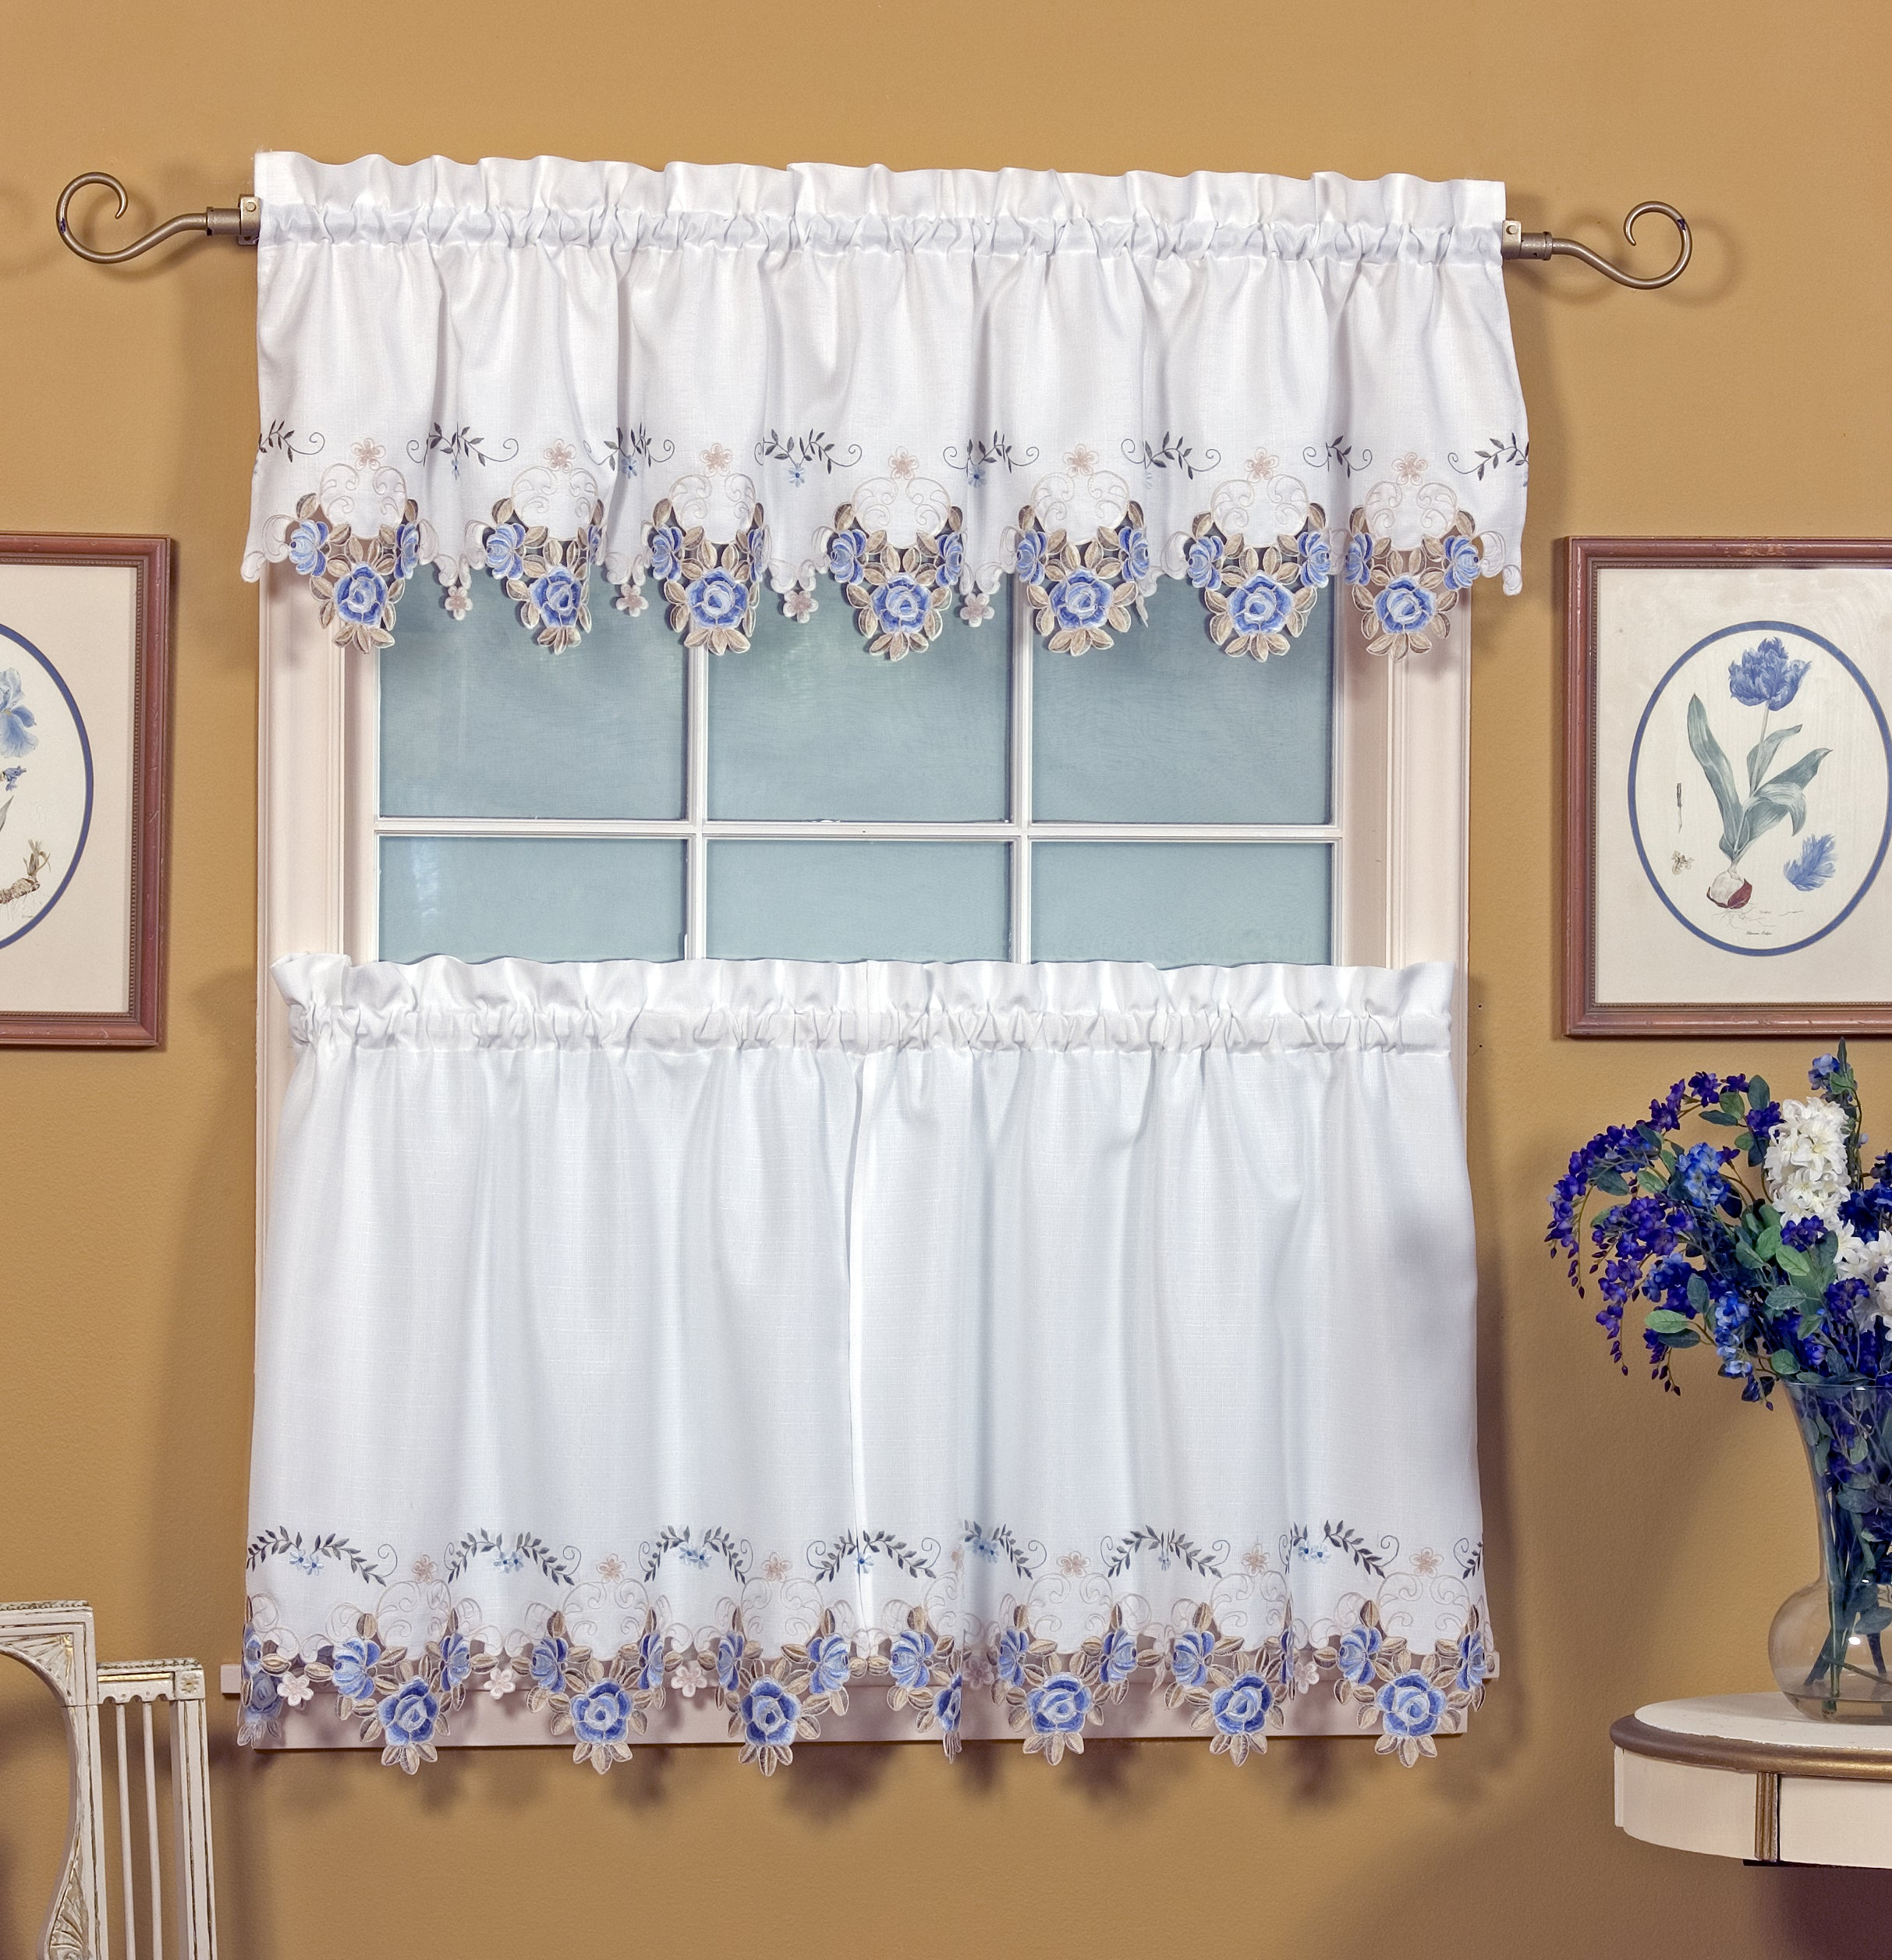 Verona Embroidery Kitchen Collection – Marburn Curtains